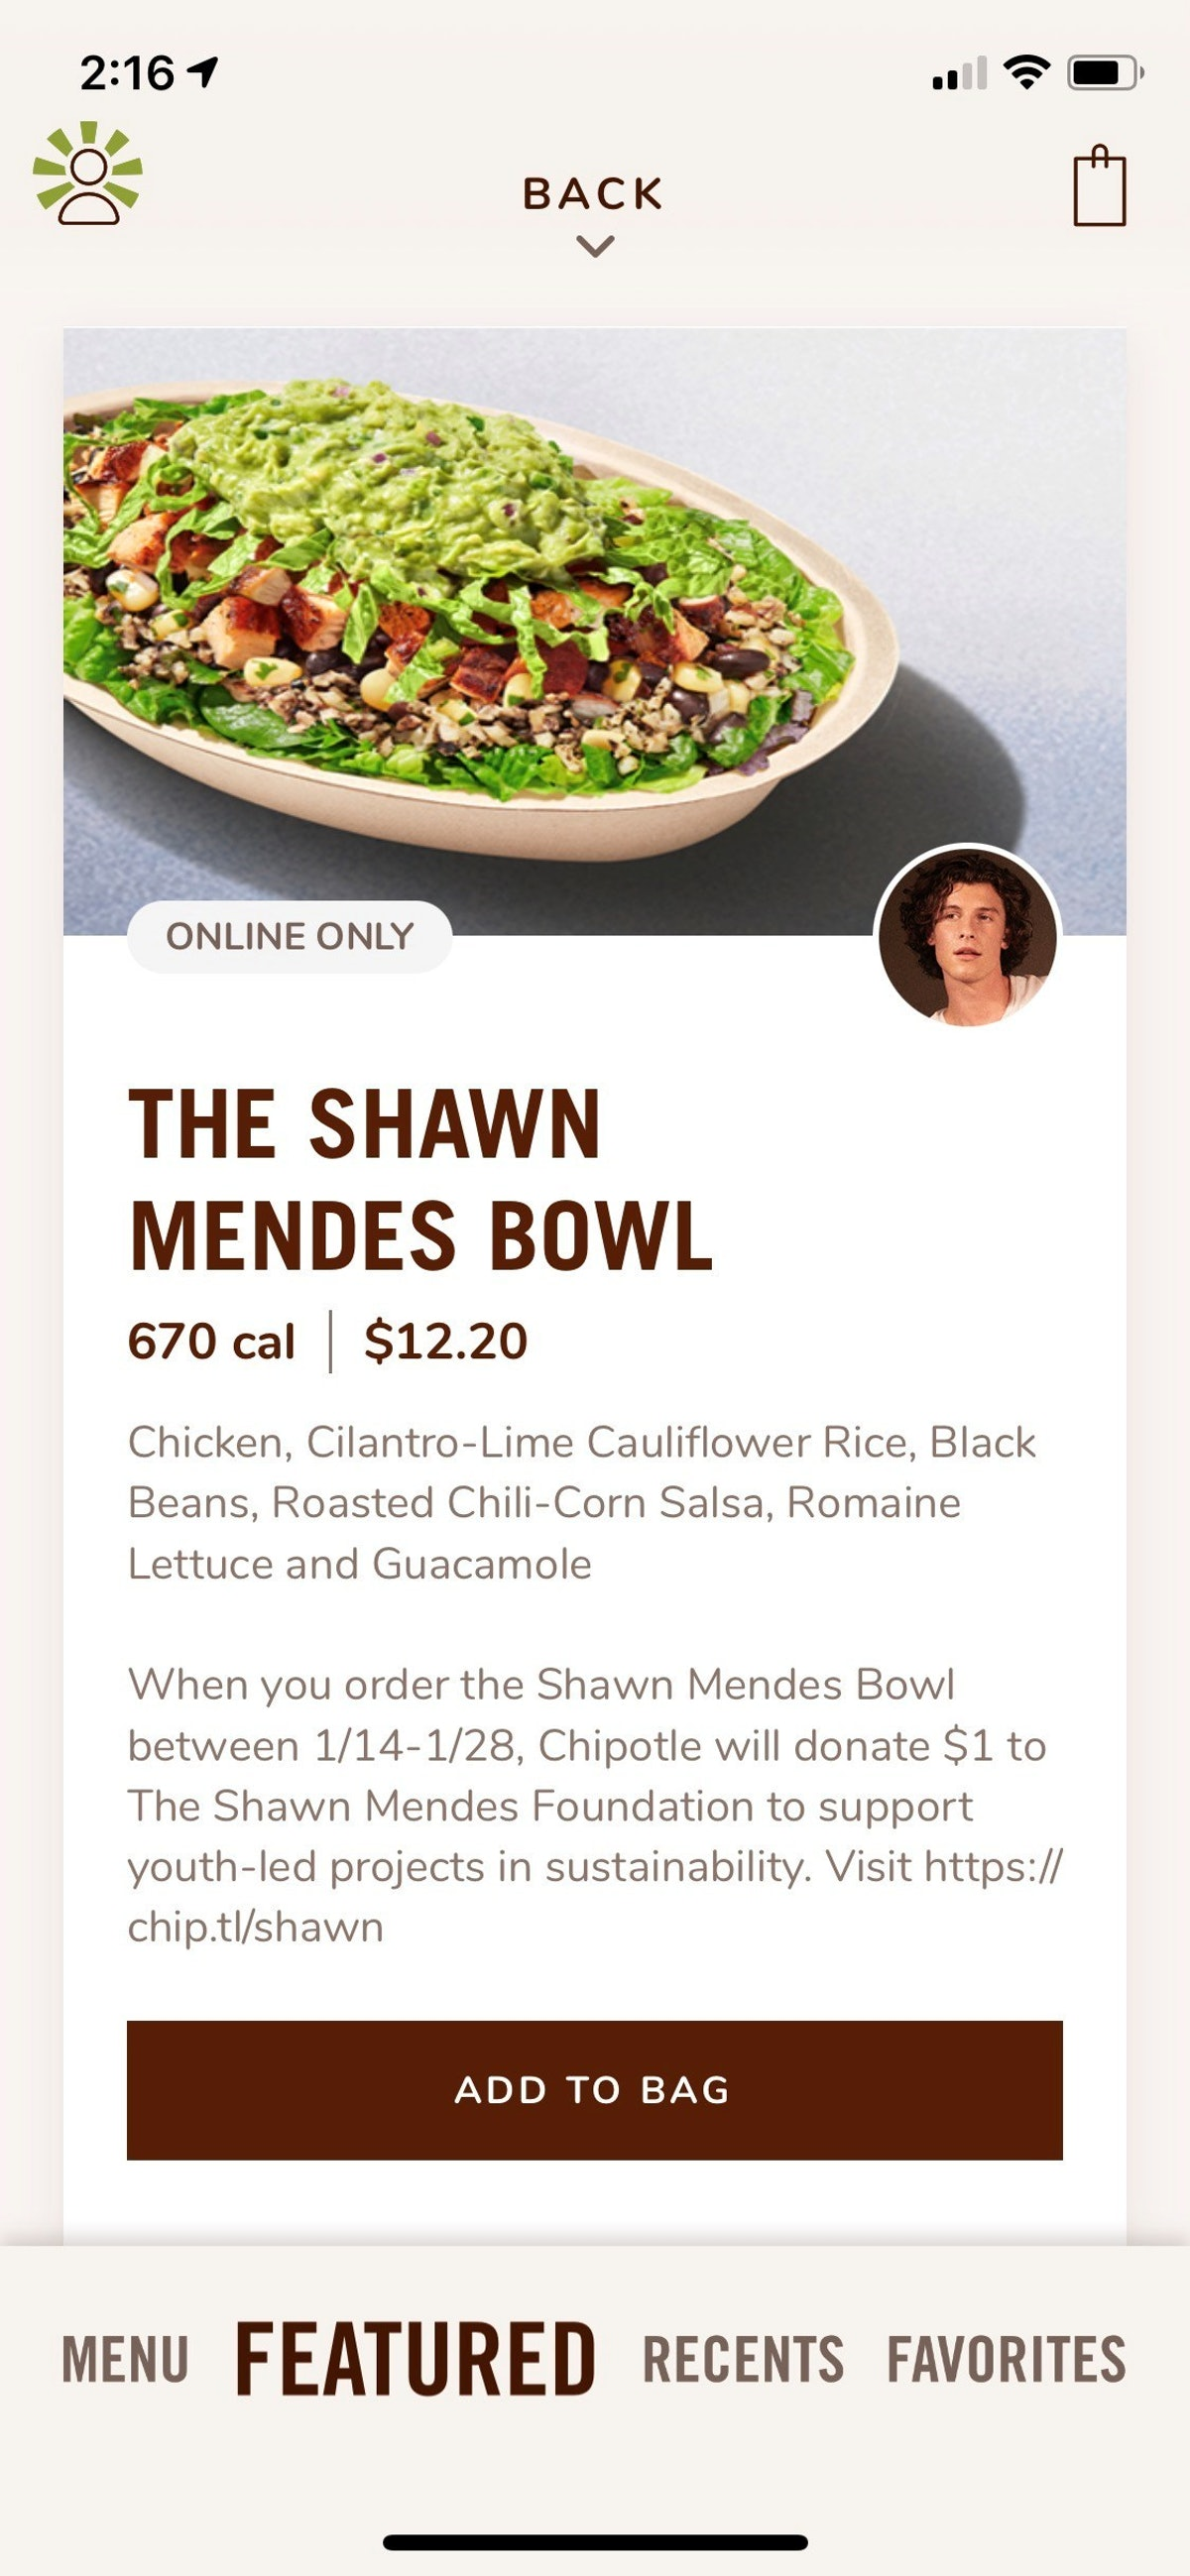 The Shawn Mendes Bowl at Chipotle features the new cauliflower rice.